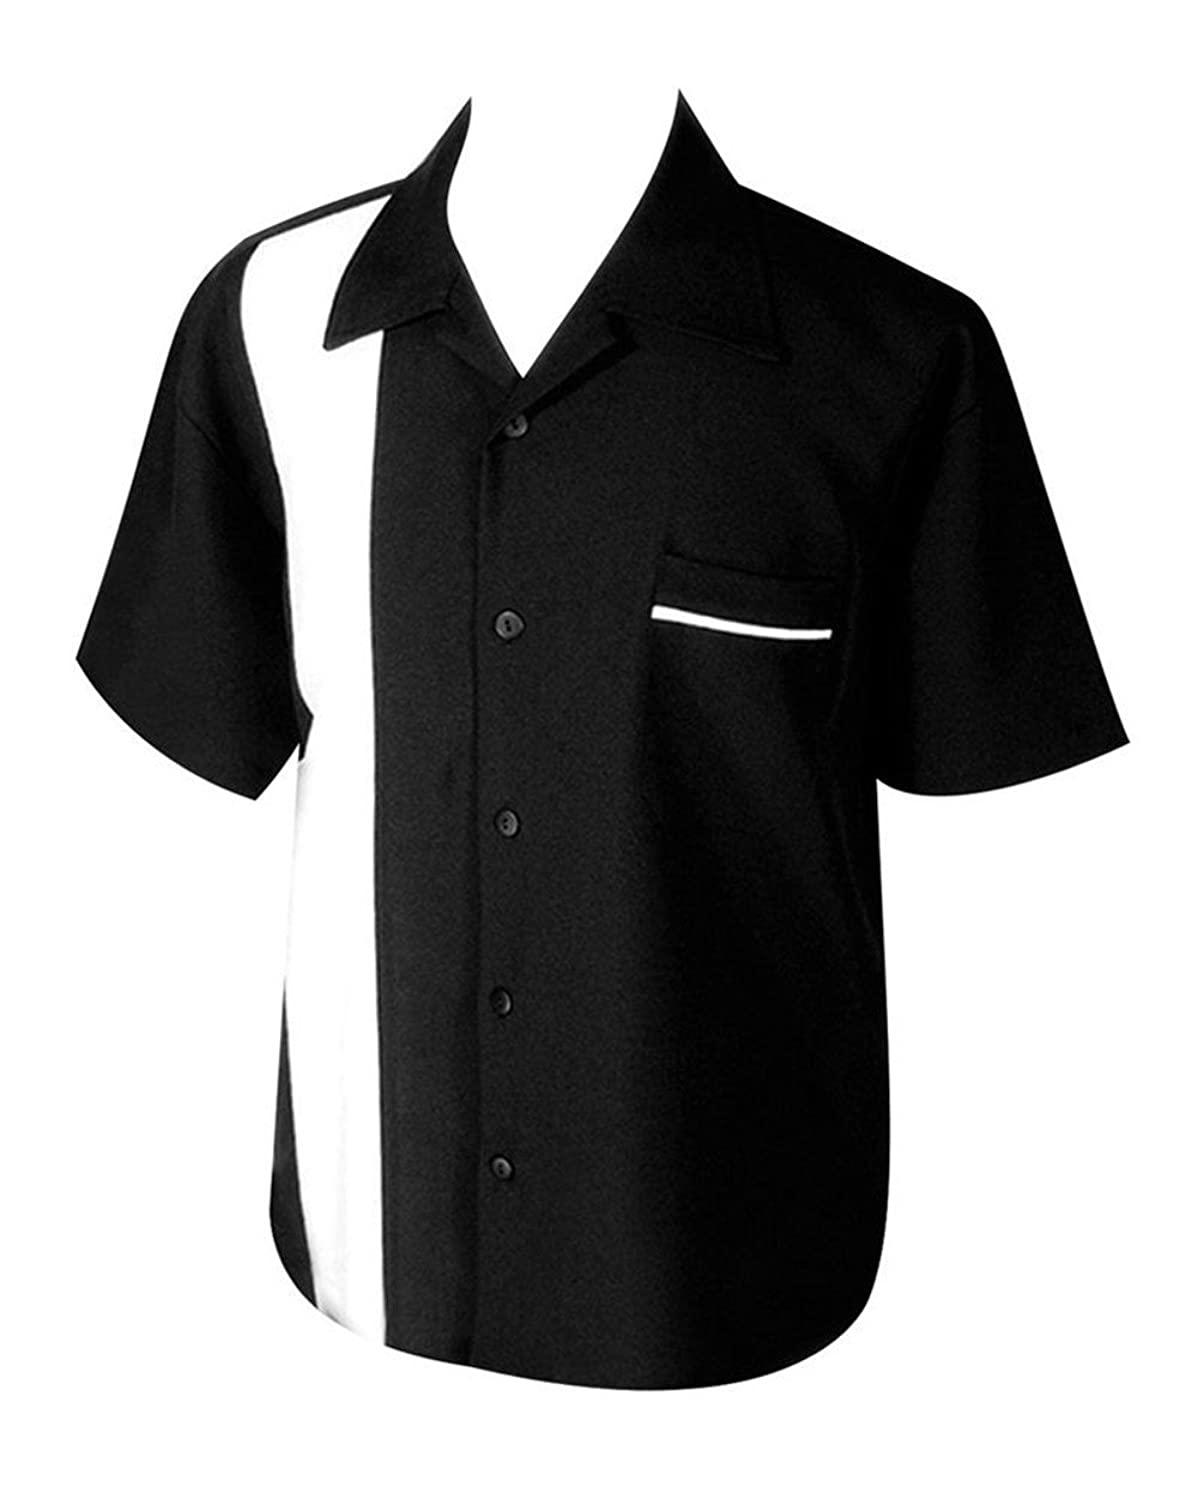 1950s Mens Shirts | Retro Bowling Shirts, Vintage Hawaiian Shirts  Black & White Bowling Lounge Shirt Rockabilly Back to 50s 1950s $34.99 AT vintagedancer.com